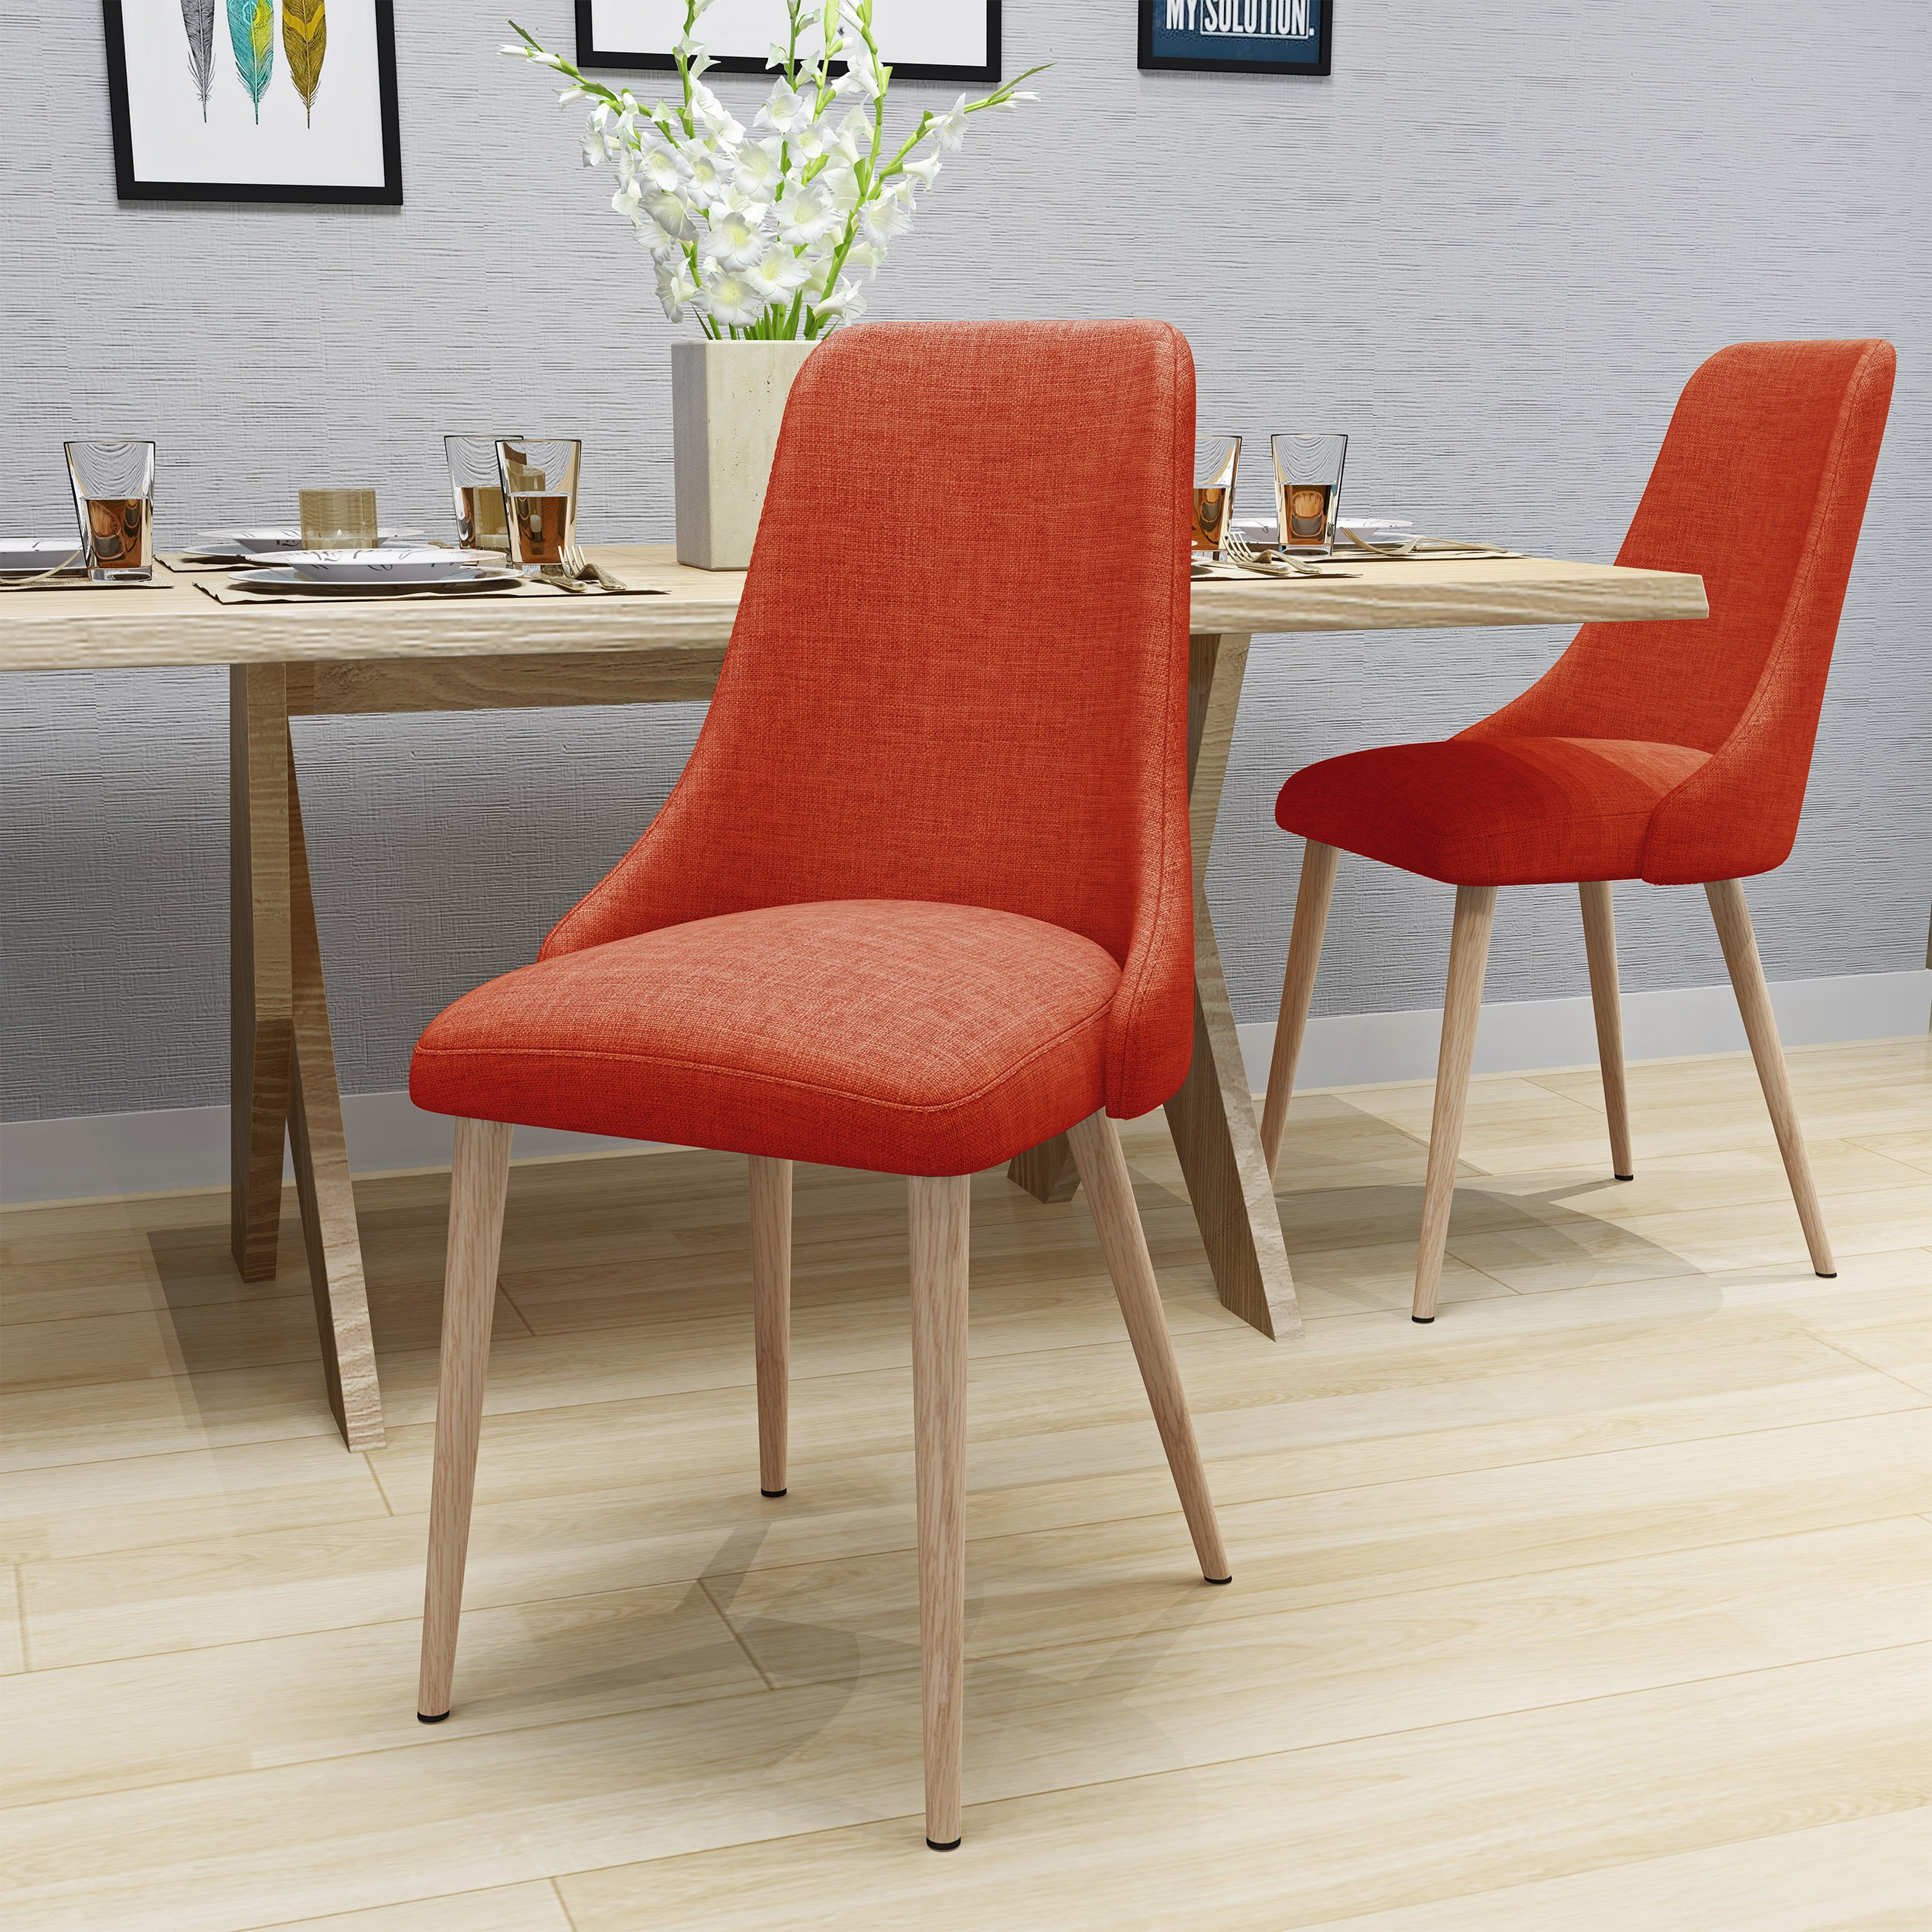 Raphelle Mid Century Muted Orange Fabric Dining Chairs with Light Walnut Wood Finished Legs (Set of 2) by Great Deal Furniture